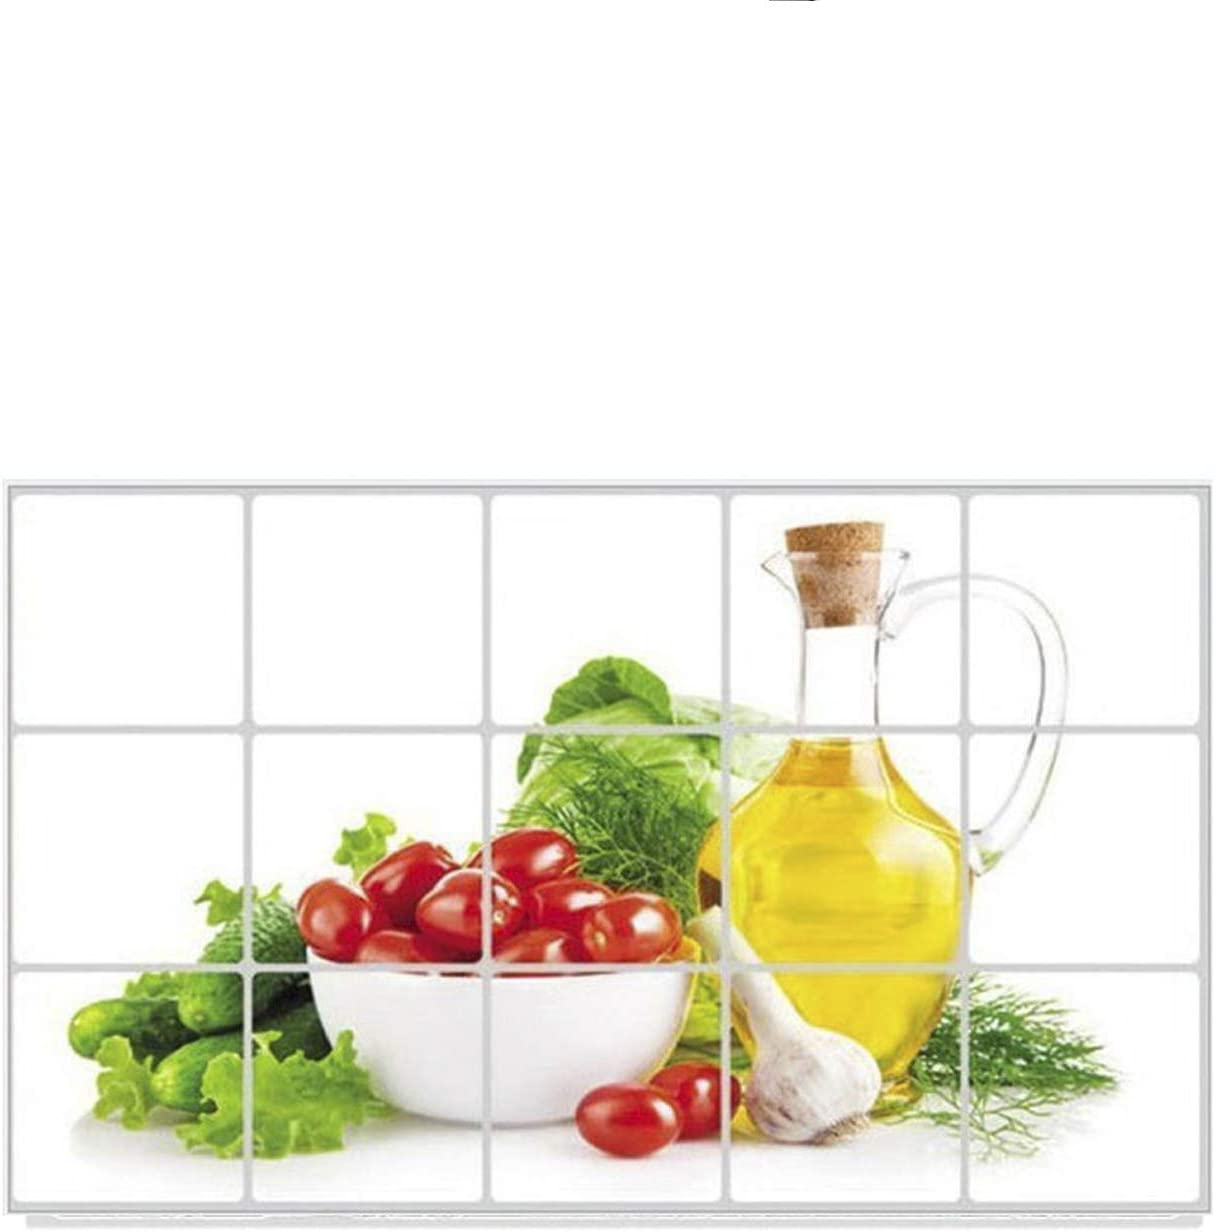 RenxinND Fruit Vegetable Wall Stickers Art Decor Kitchen Wall Self-Adhesive Stickers Colorful for Home Hotel